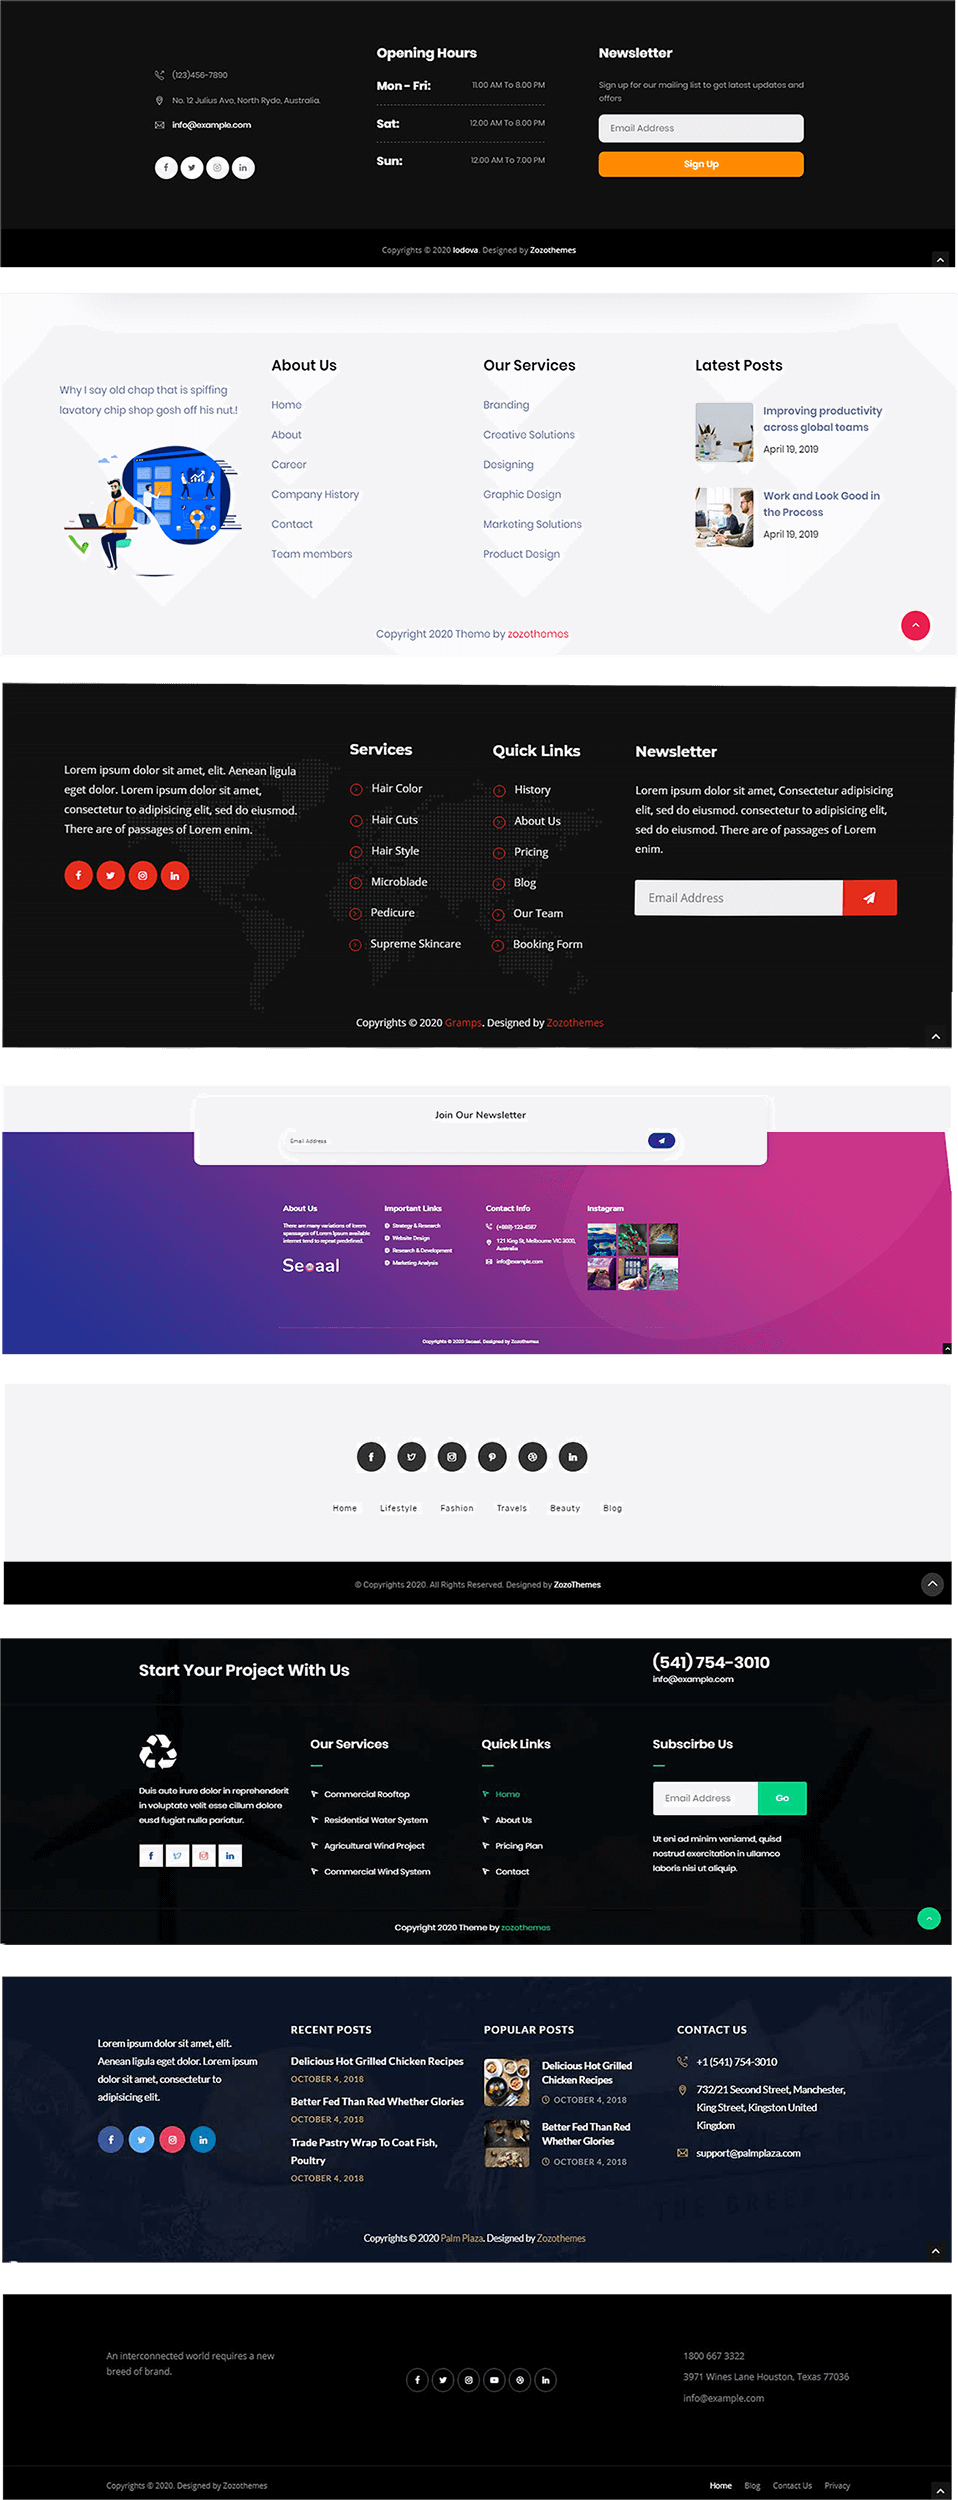 Multiple Footer page variations